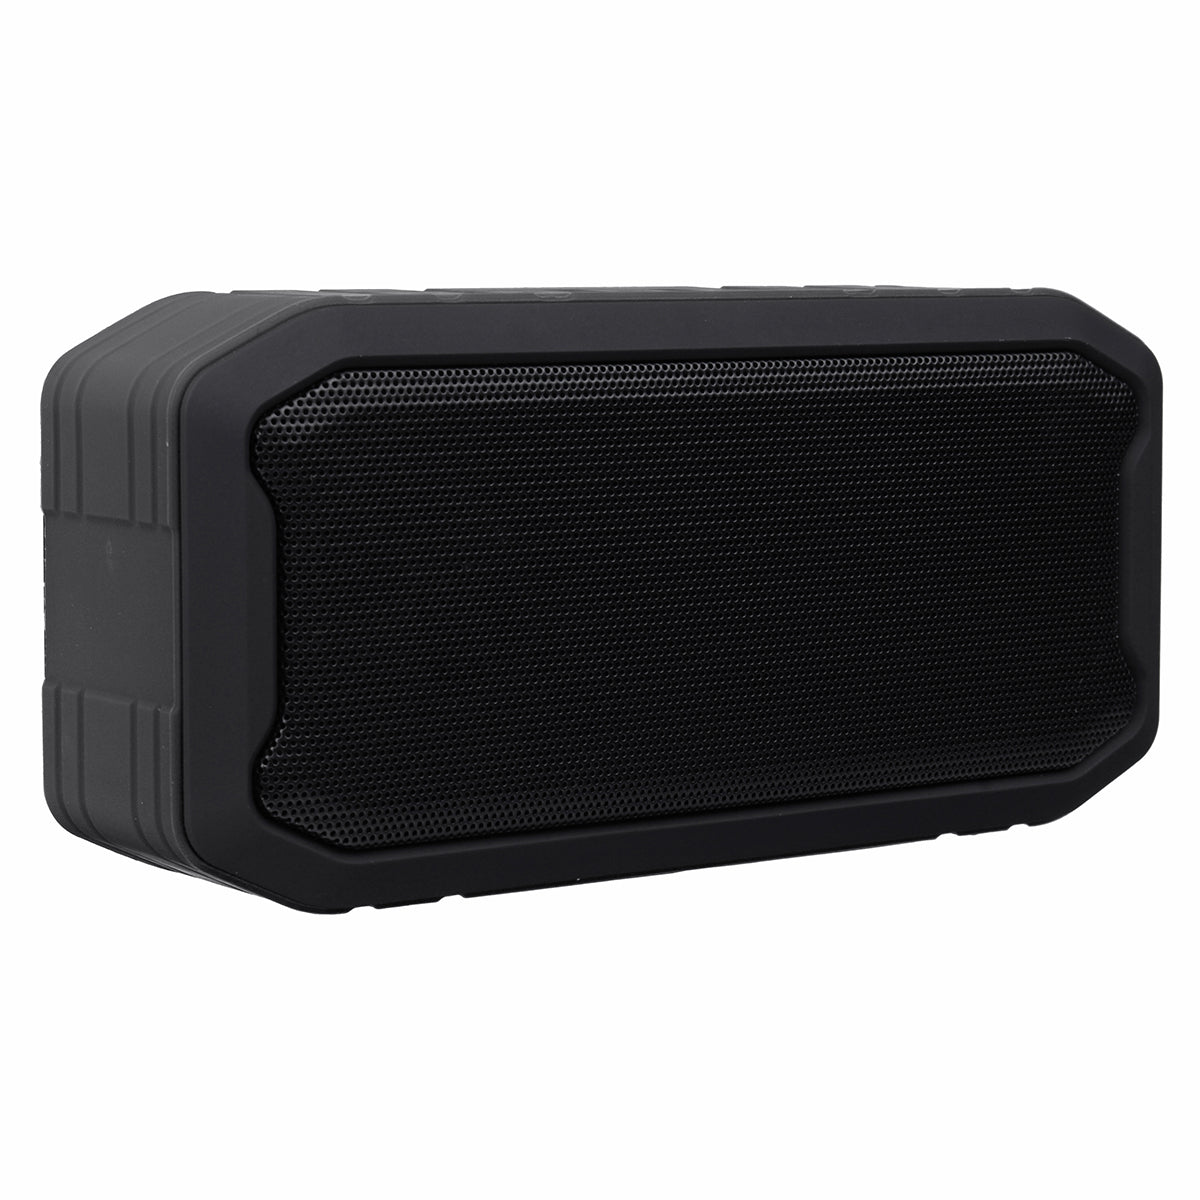 Portable Wireless Bluetooth Speaker Stereo Waterproof Outdoors Speaker with Mic